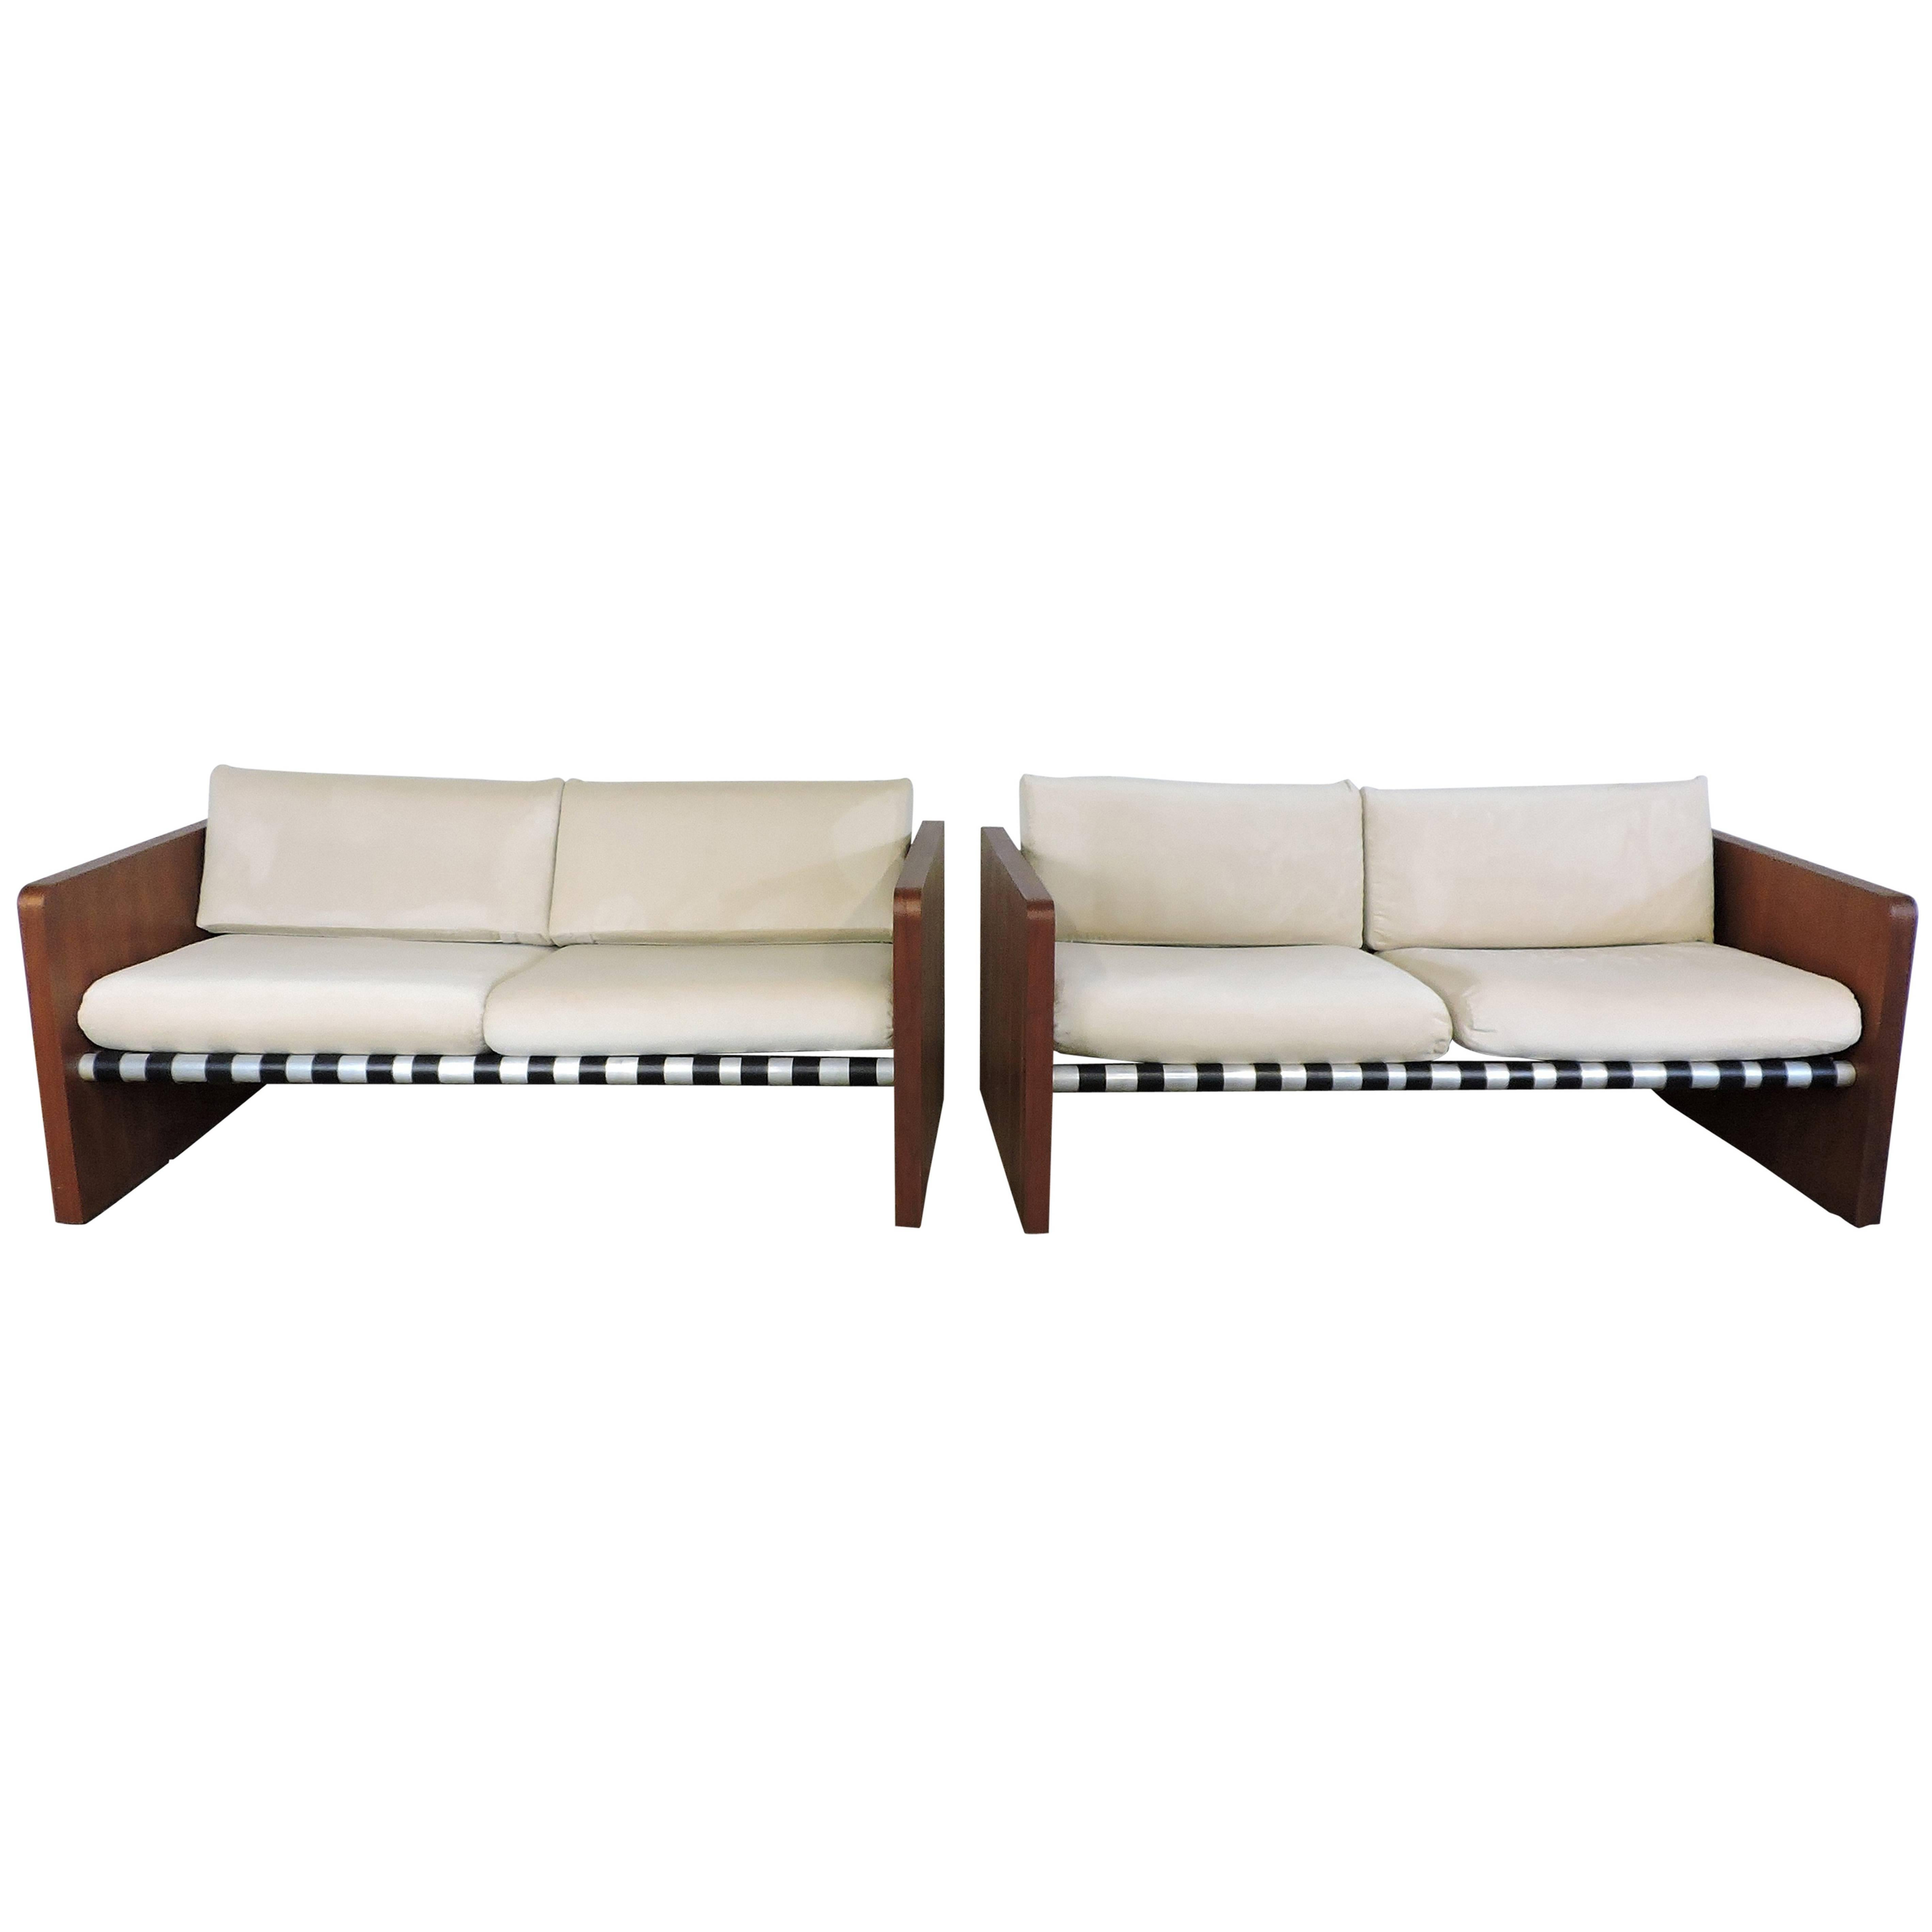 Pair Of Mid Century Modern Walnut Sling Sofas By Founders